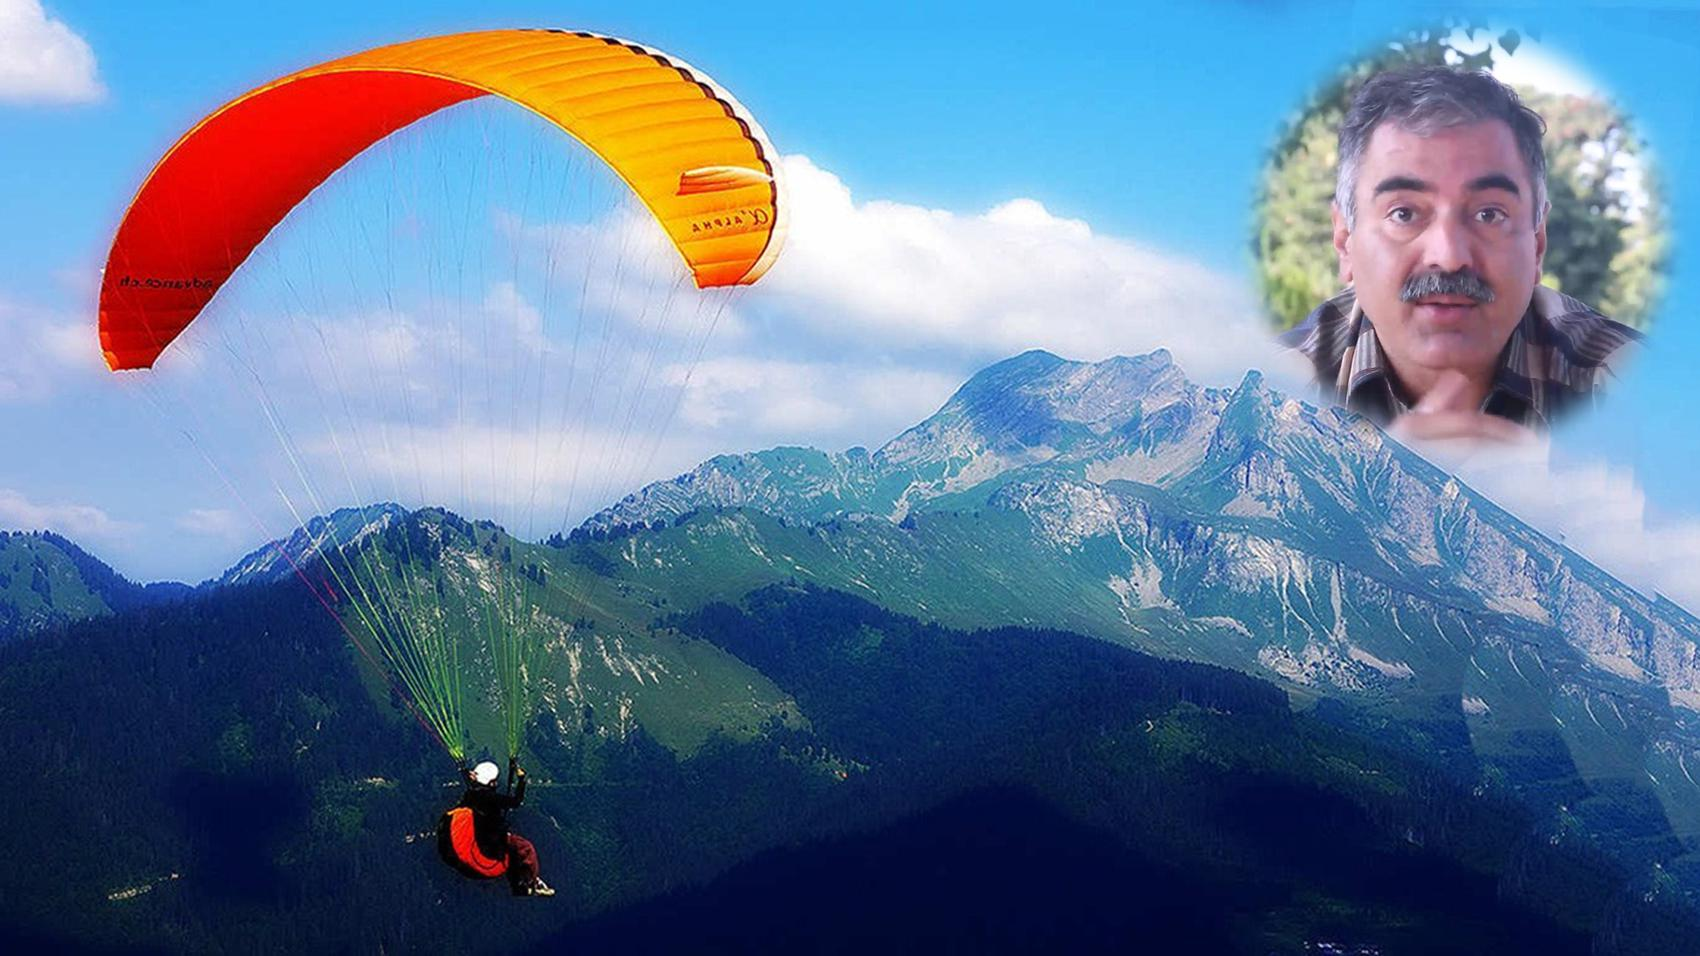 Career in Paragliding